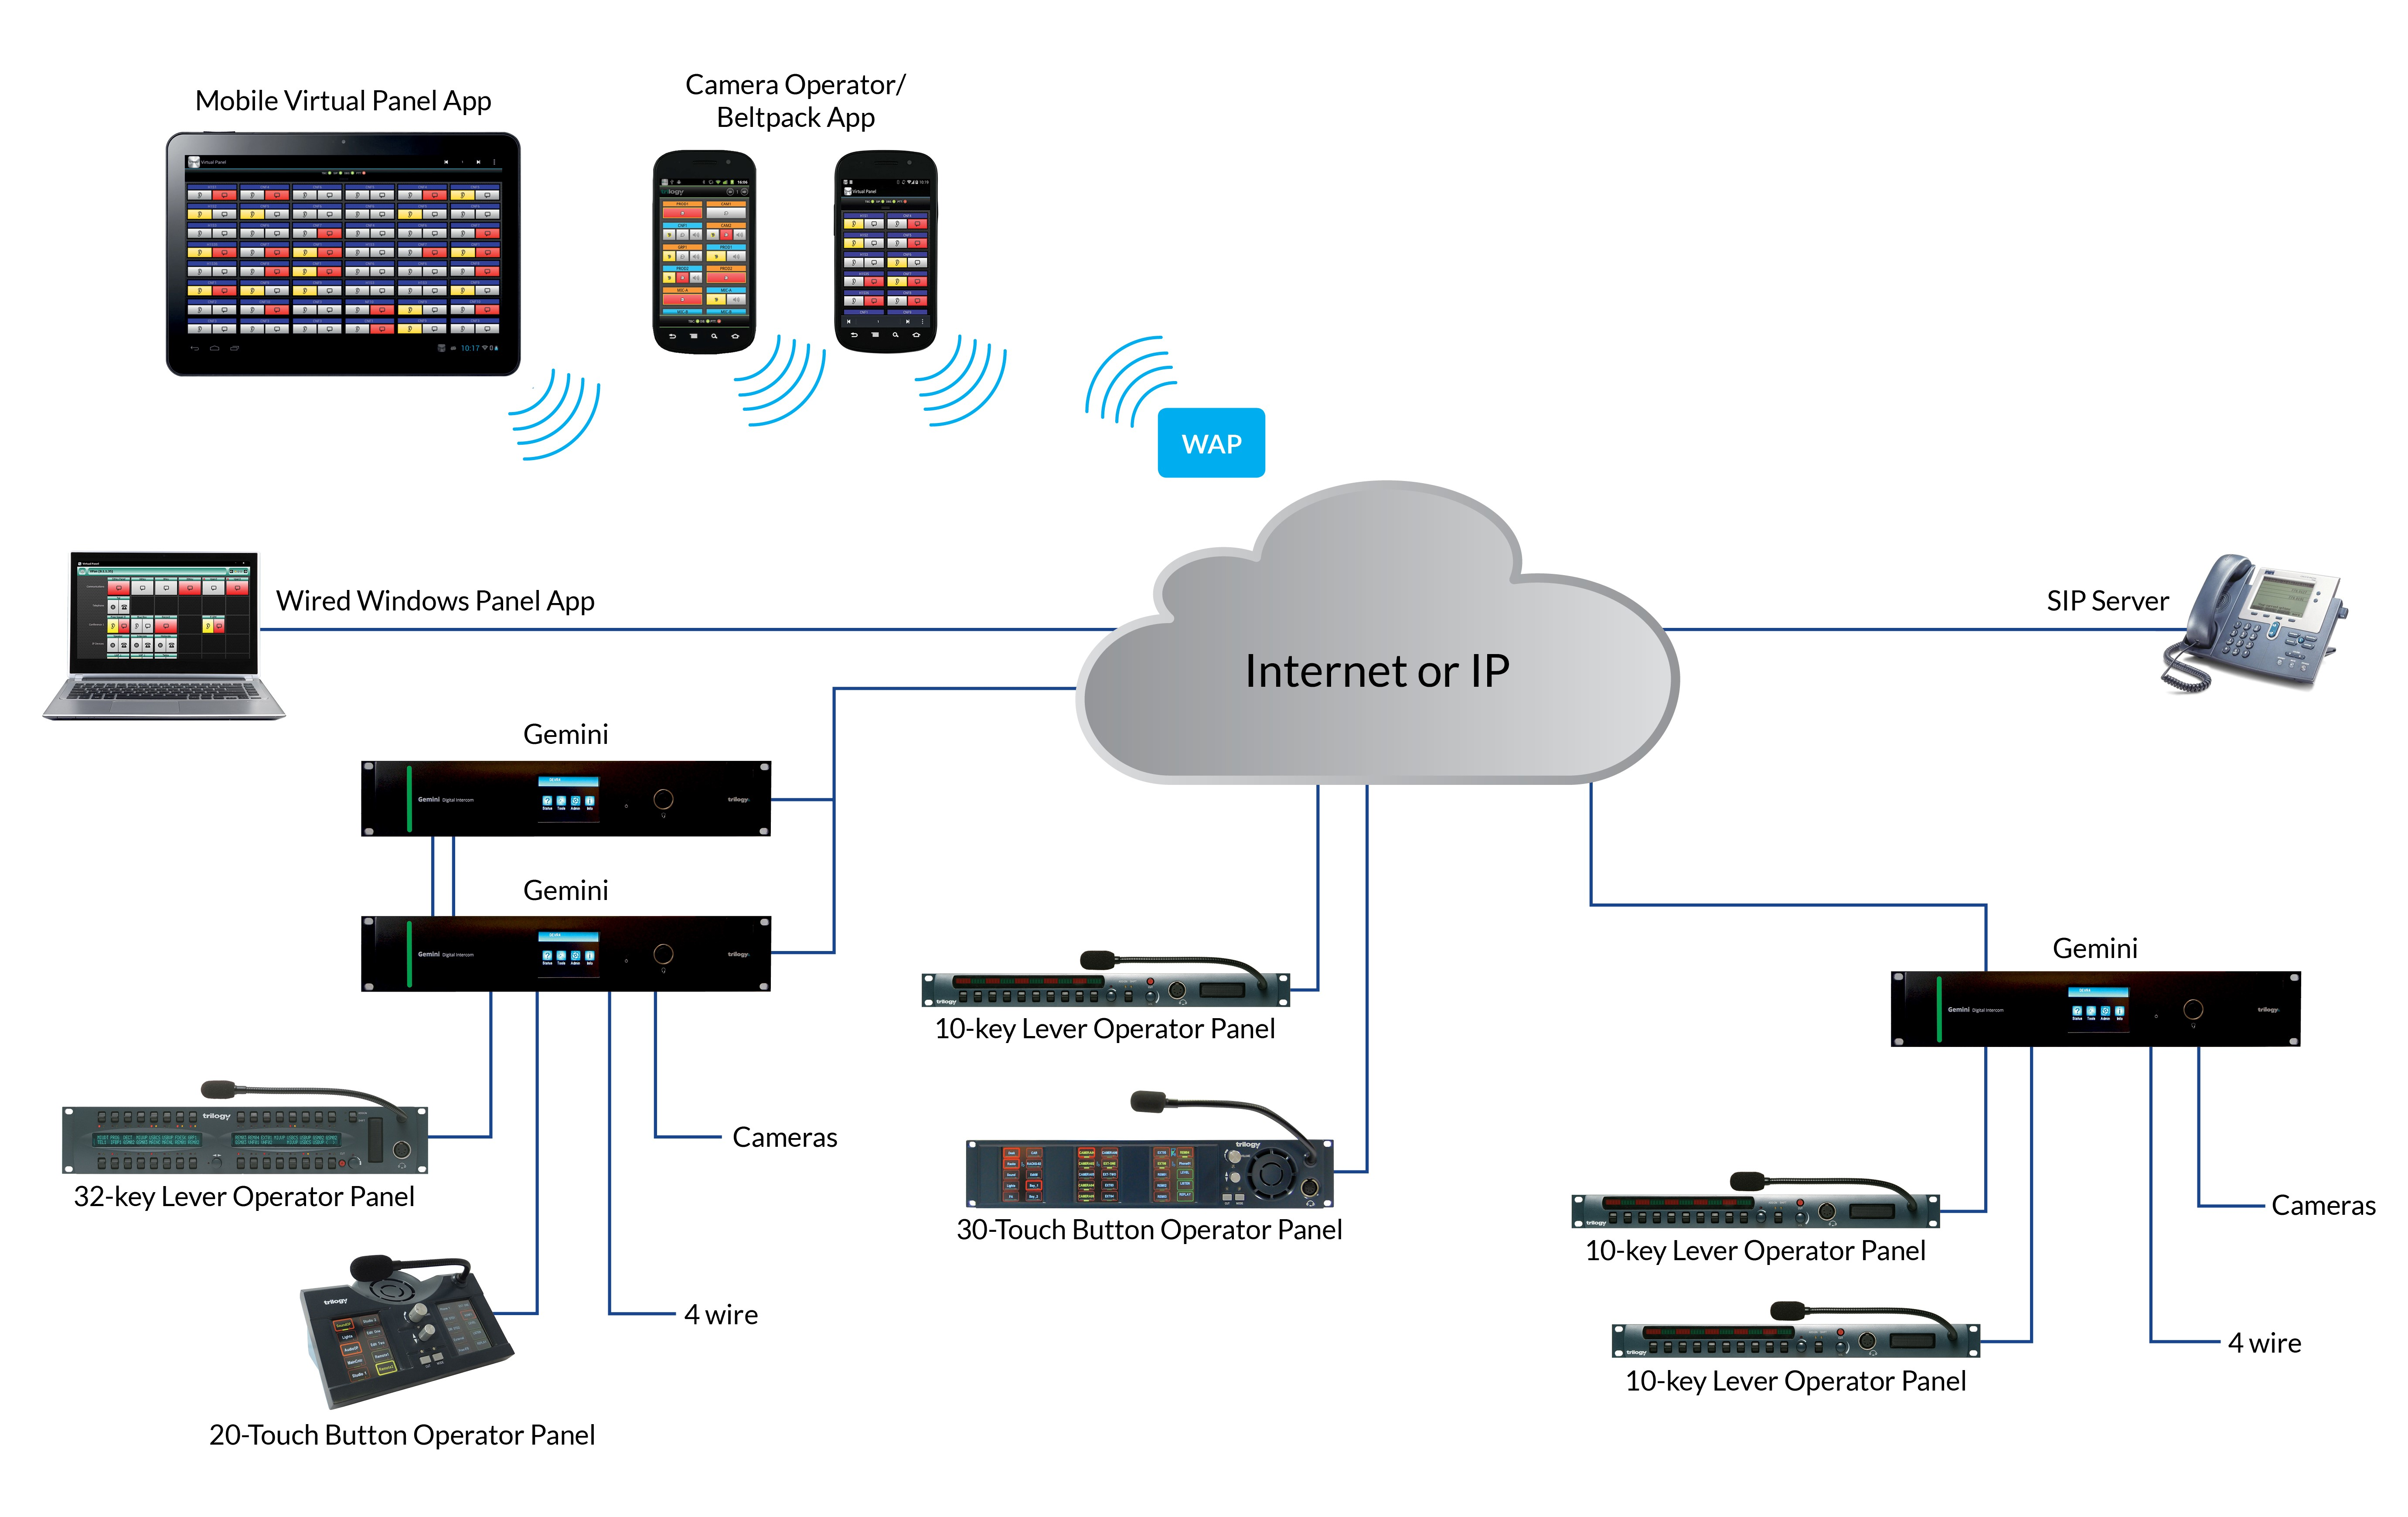 gemini features comprehensive integrated ip capabilities together with  interfaces to 4-wire circuits, telephony, aes/madi, ip panels and sip for  analog or